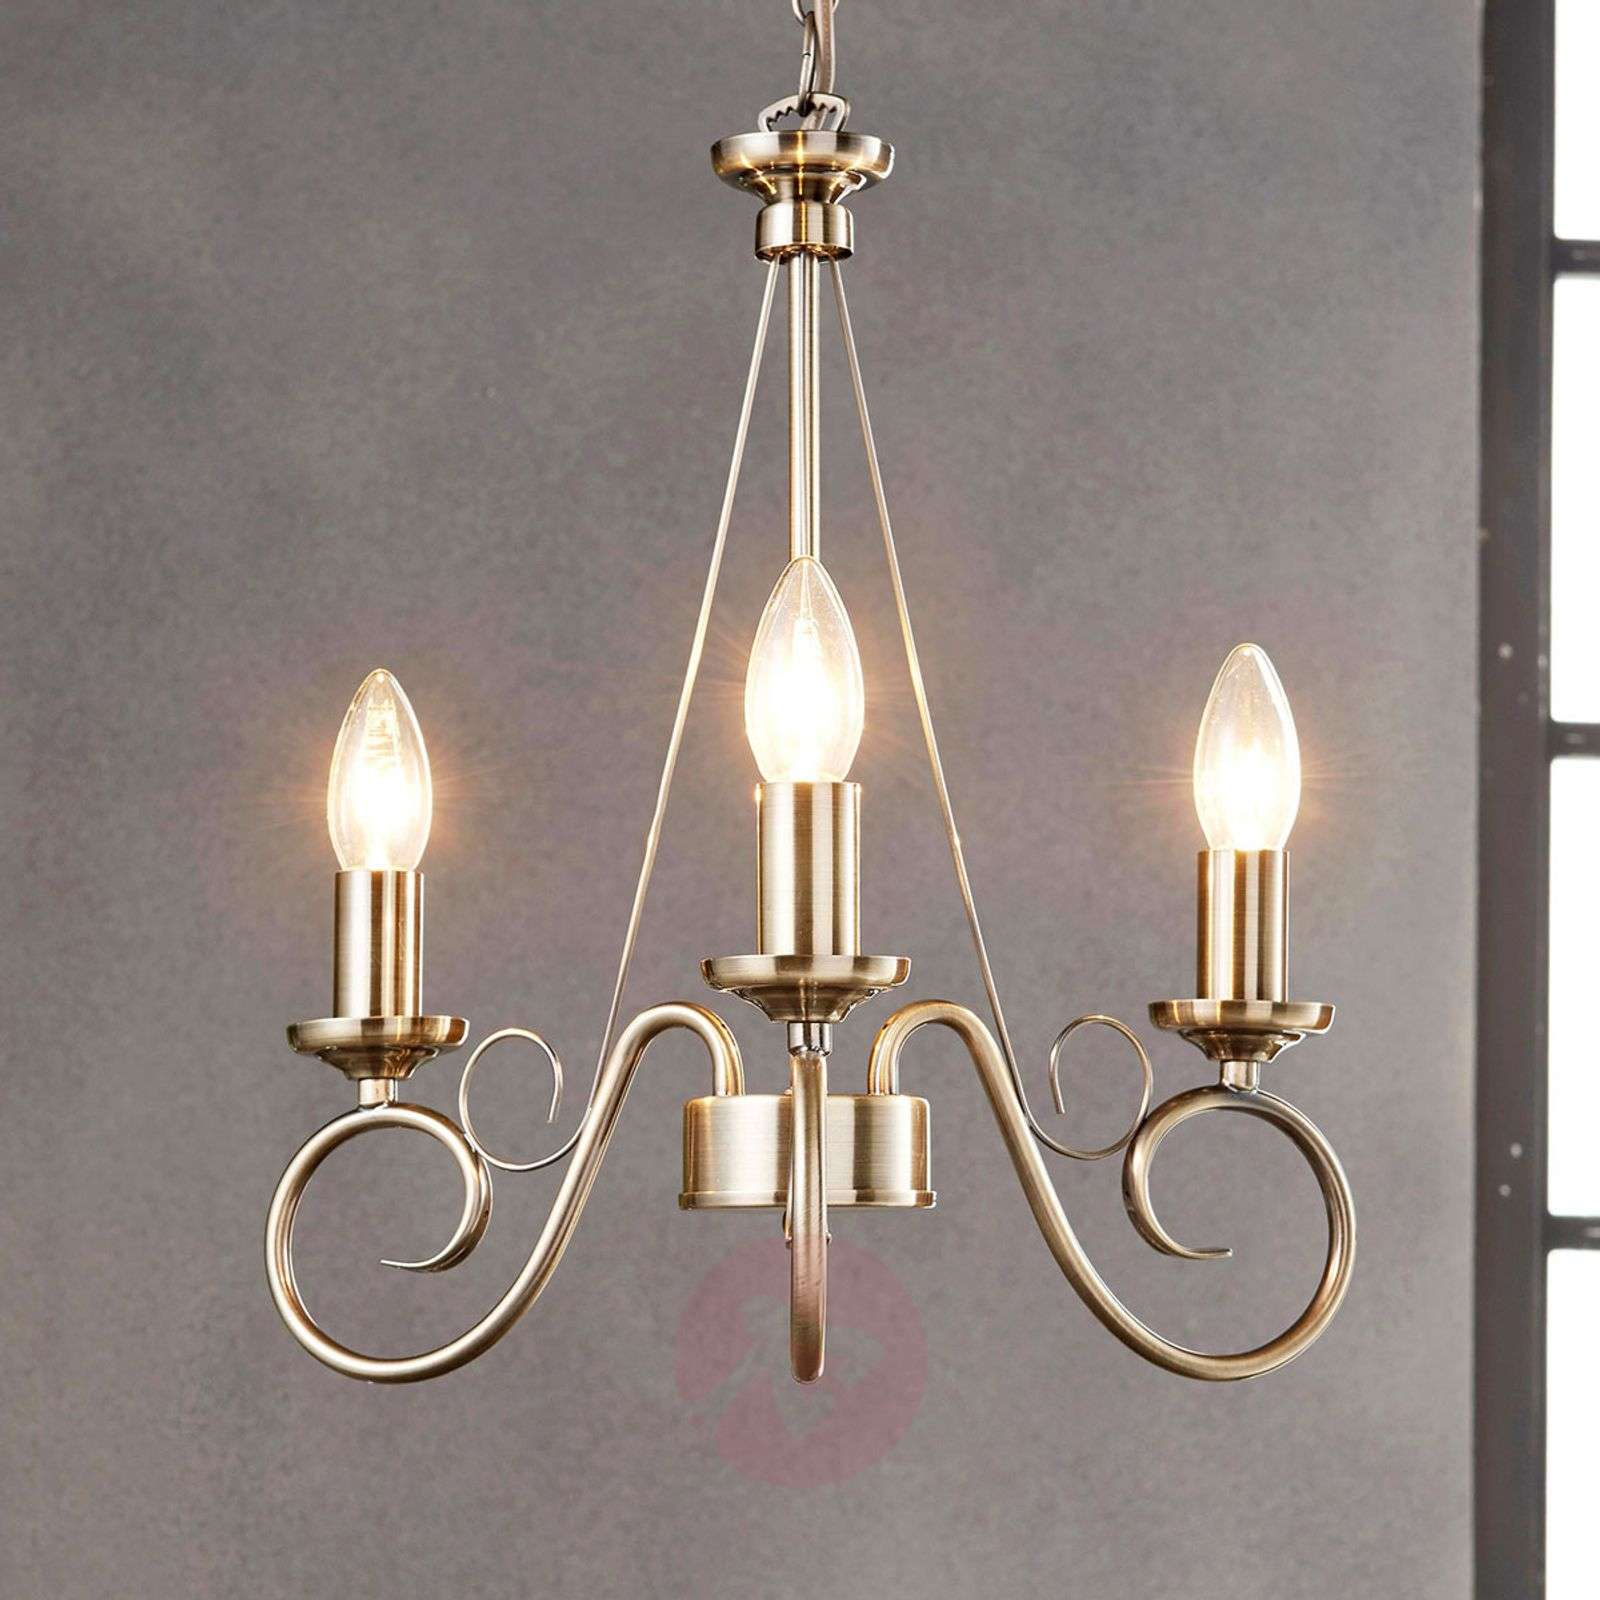 Antique brass chandelier marnia 3 bulb